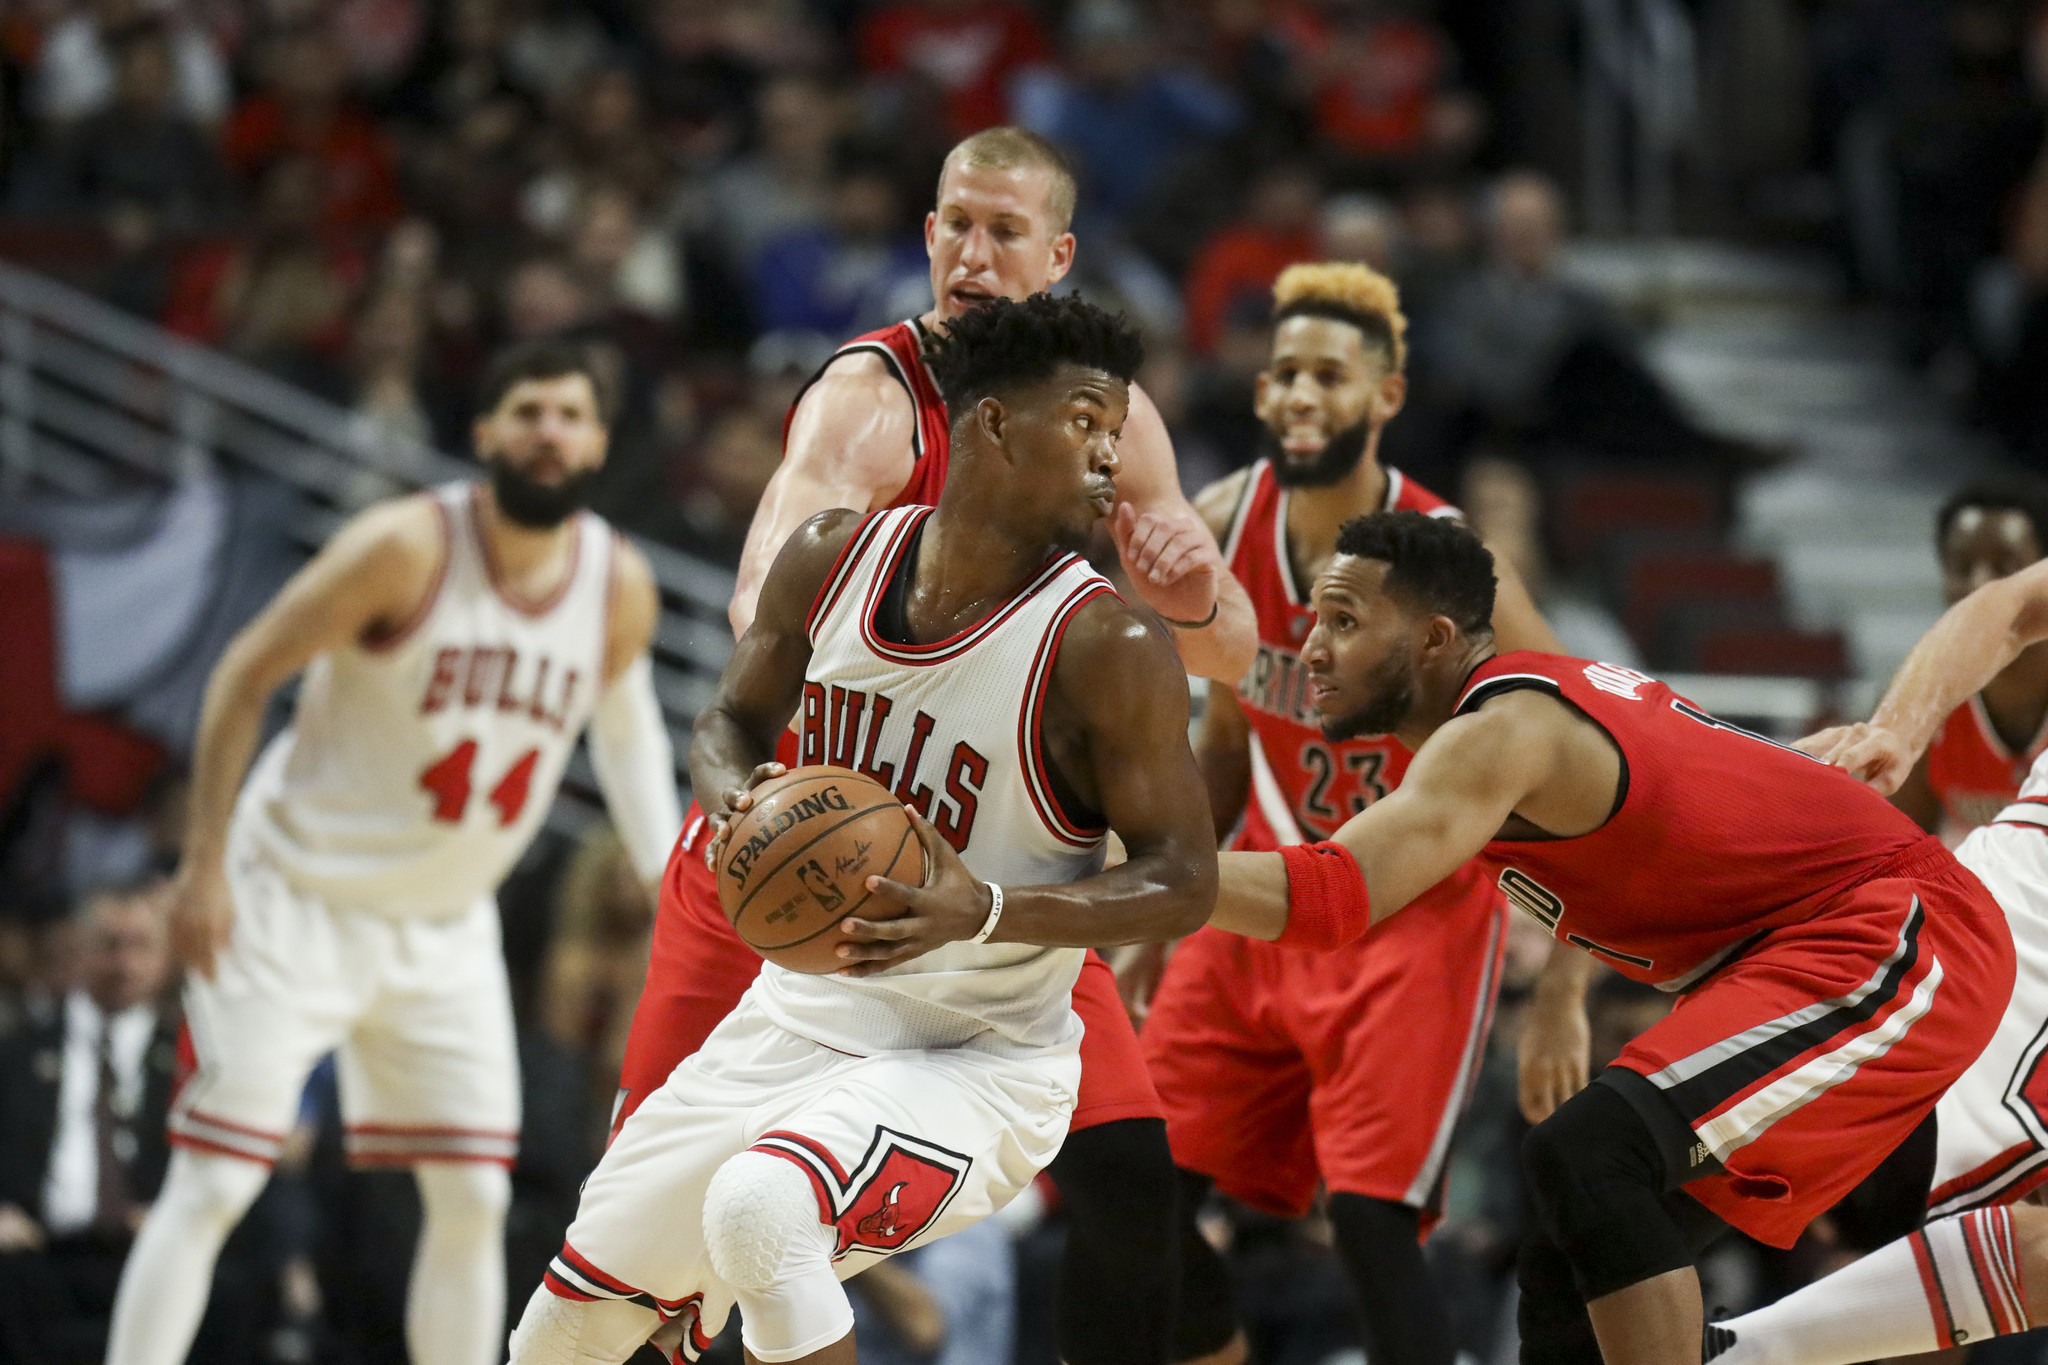 Ct-jimmy-butler-workload-bits-bulls-spt-1208-20161207